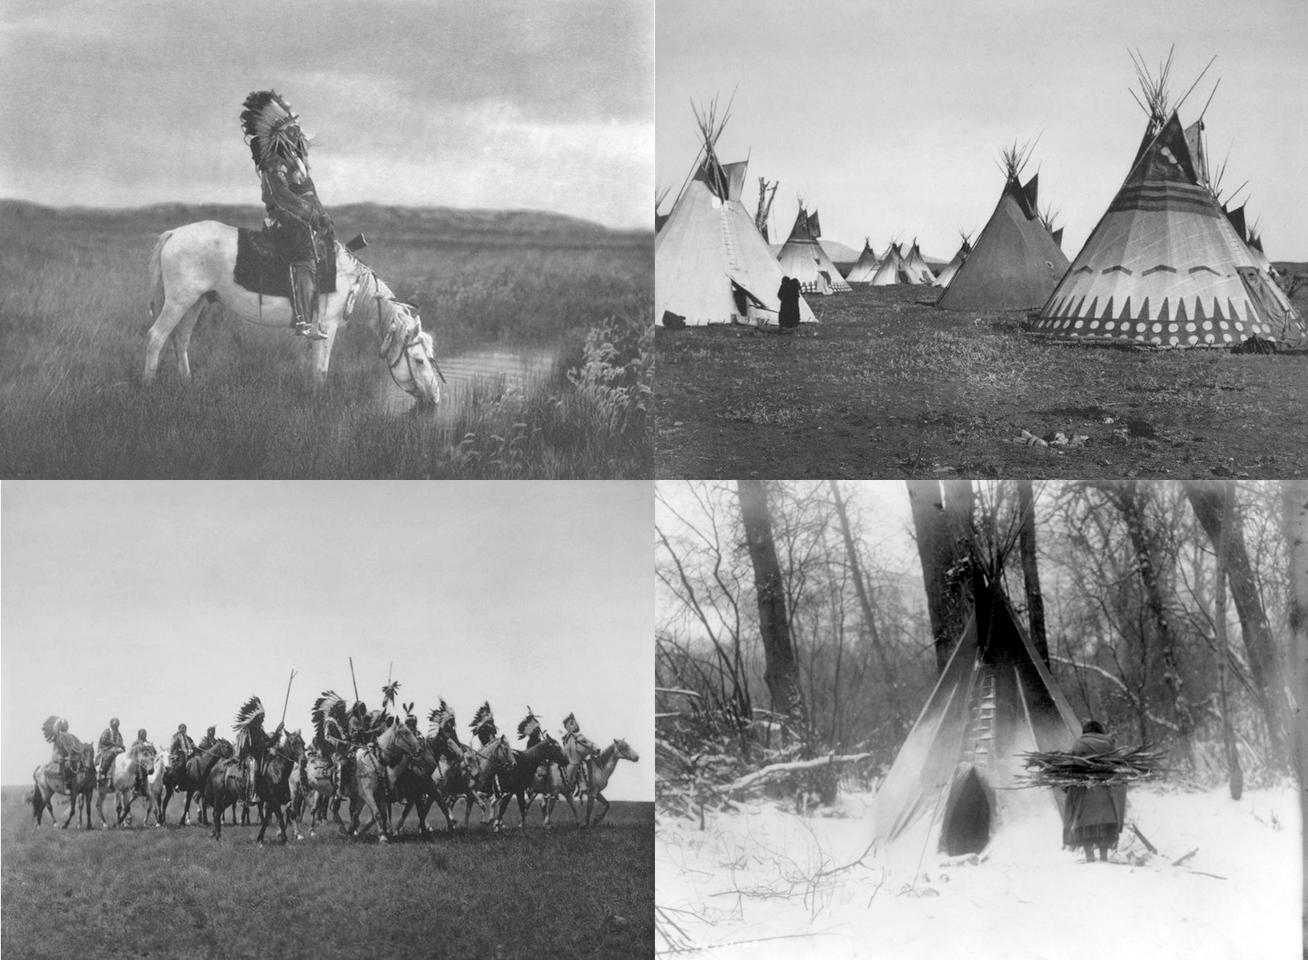 "The North American Indian was produced in 40 volumes between 1907 and 1930 by Edward S. Curtis (1868-1952) was one of the most expensive undertakings in the history of book production and one of the most comprehensive ethnographic records of any aboriginal people. According to author and critic A.D. Coleman, it is ""an absolutely unmatched masterpiece of visual anthropology, and one of the most thorough, extensive and profound photograph works of all time."""